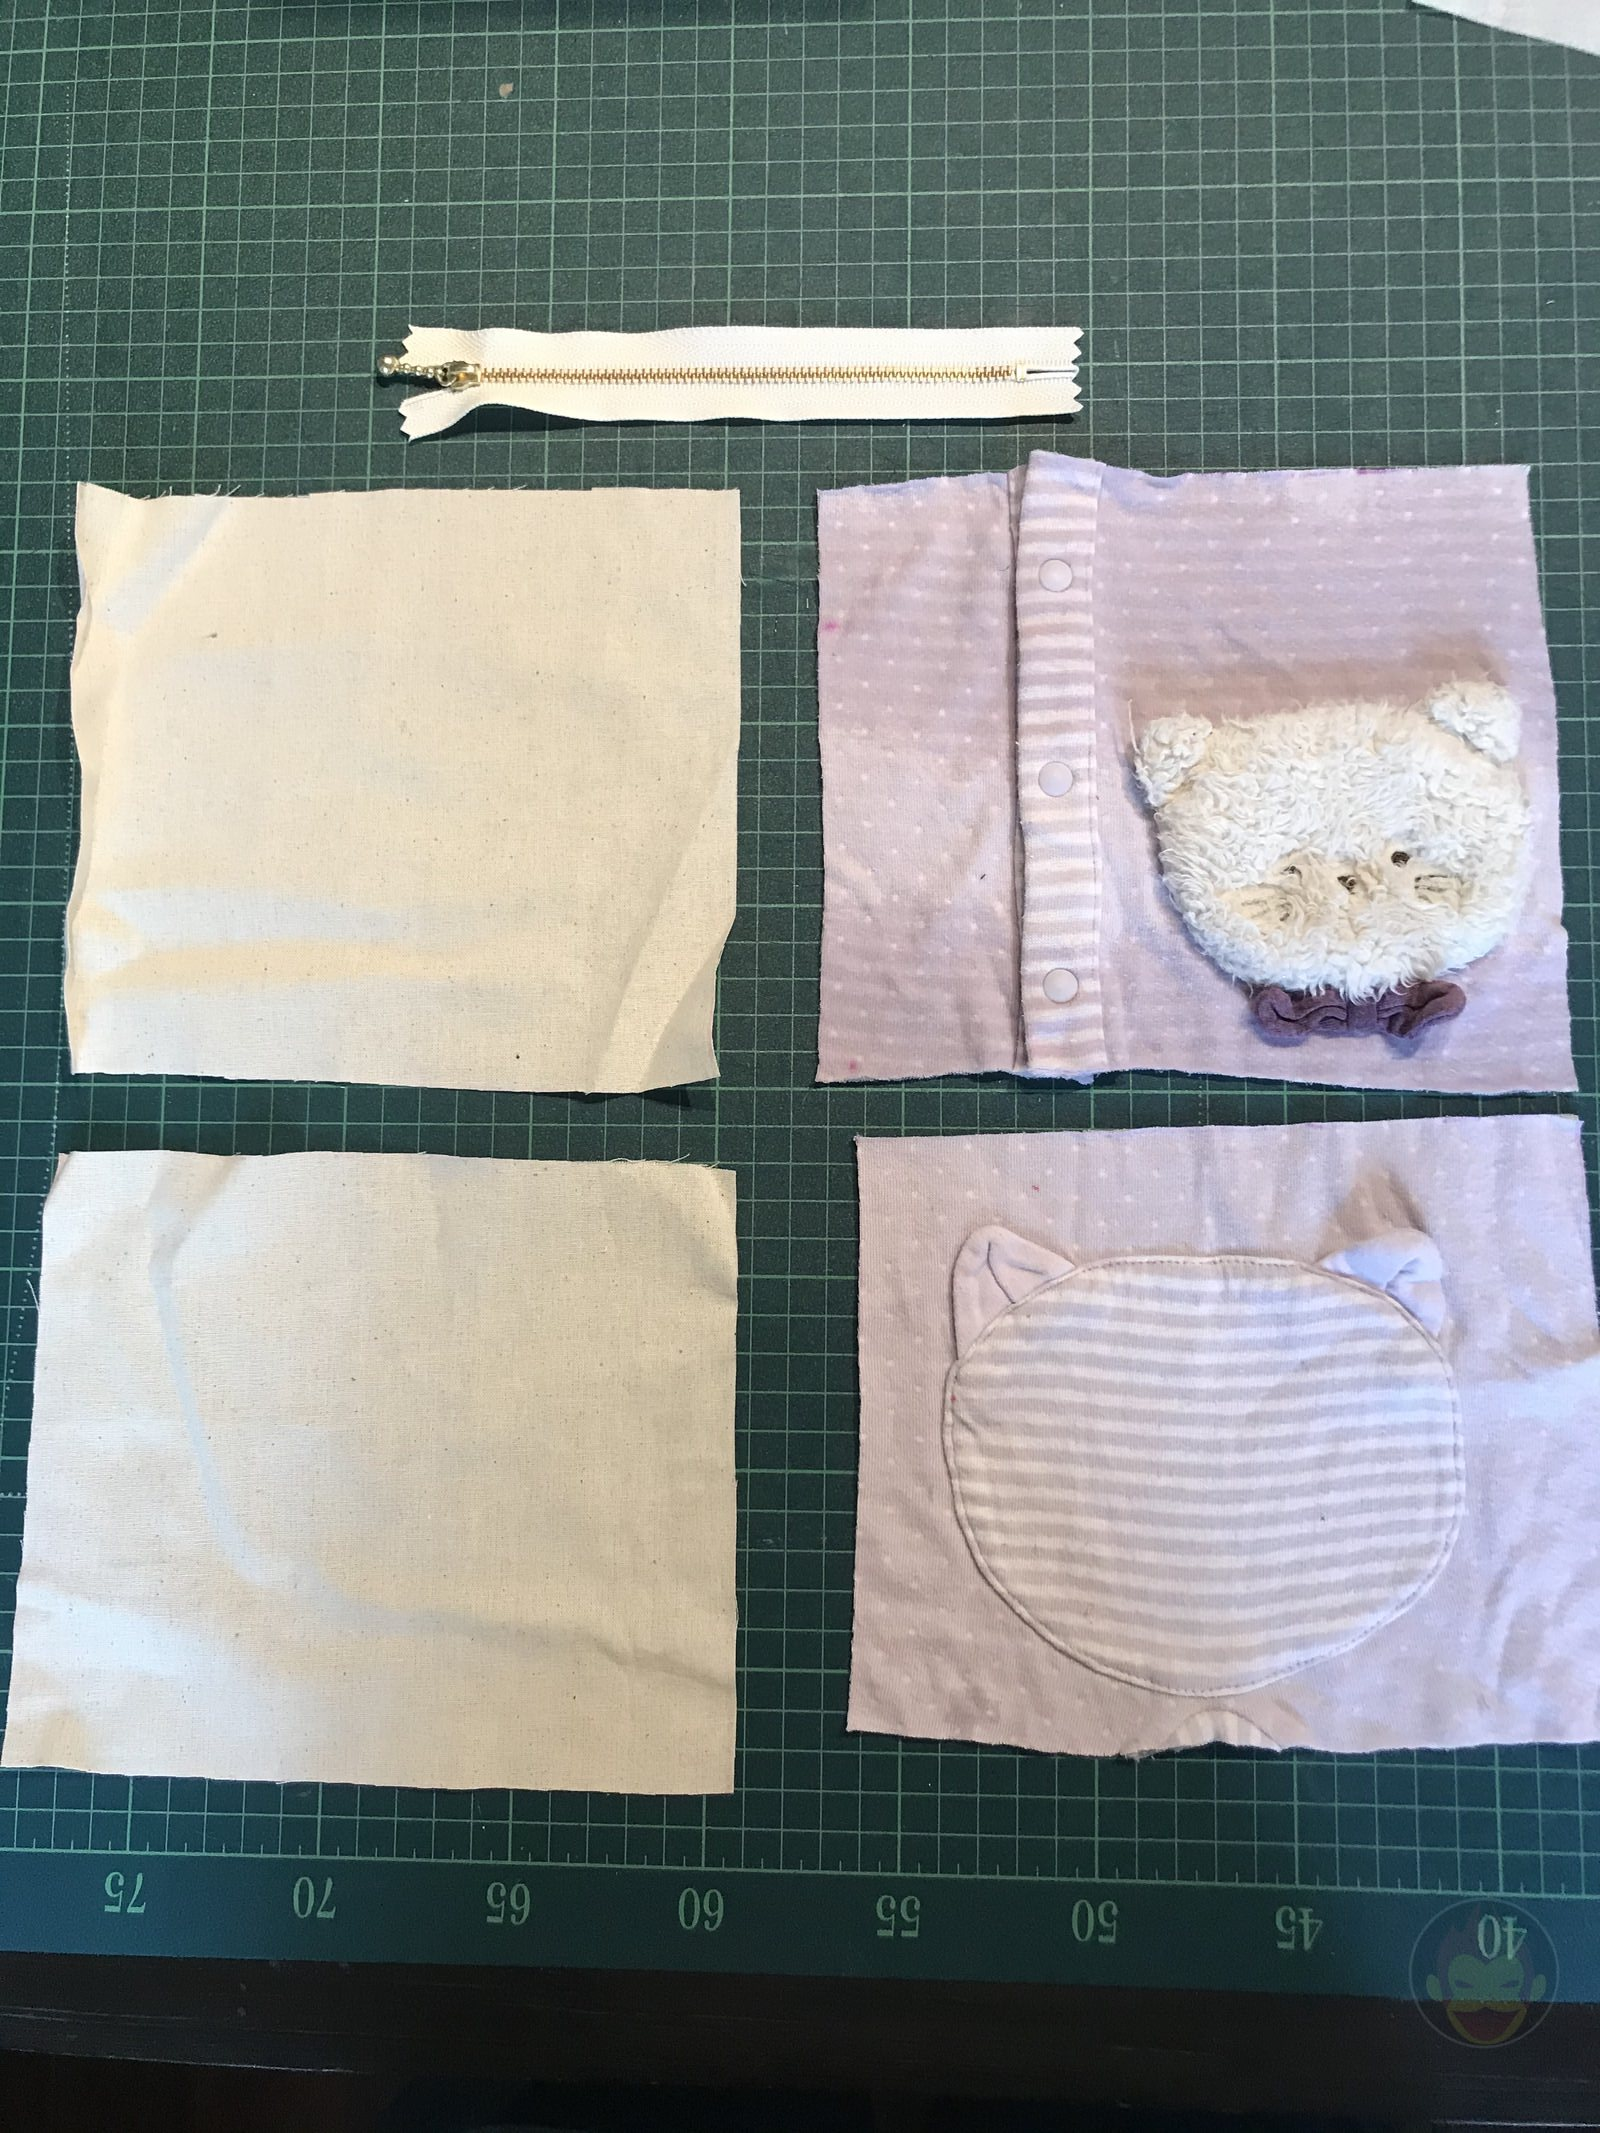 Baby Clothes remade into new items 04